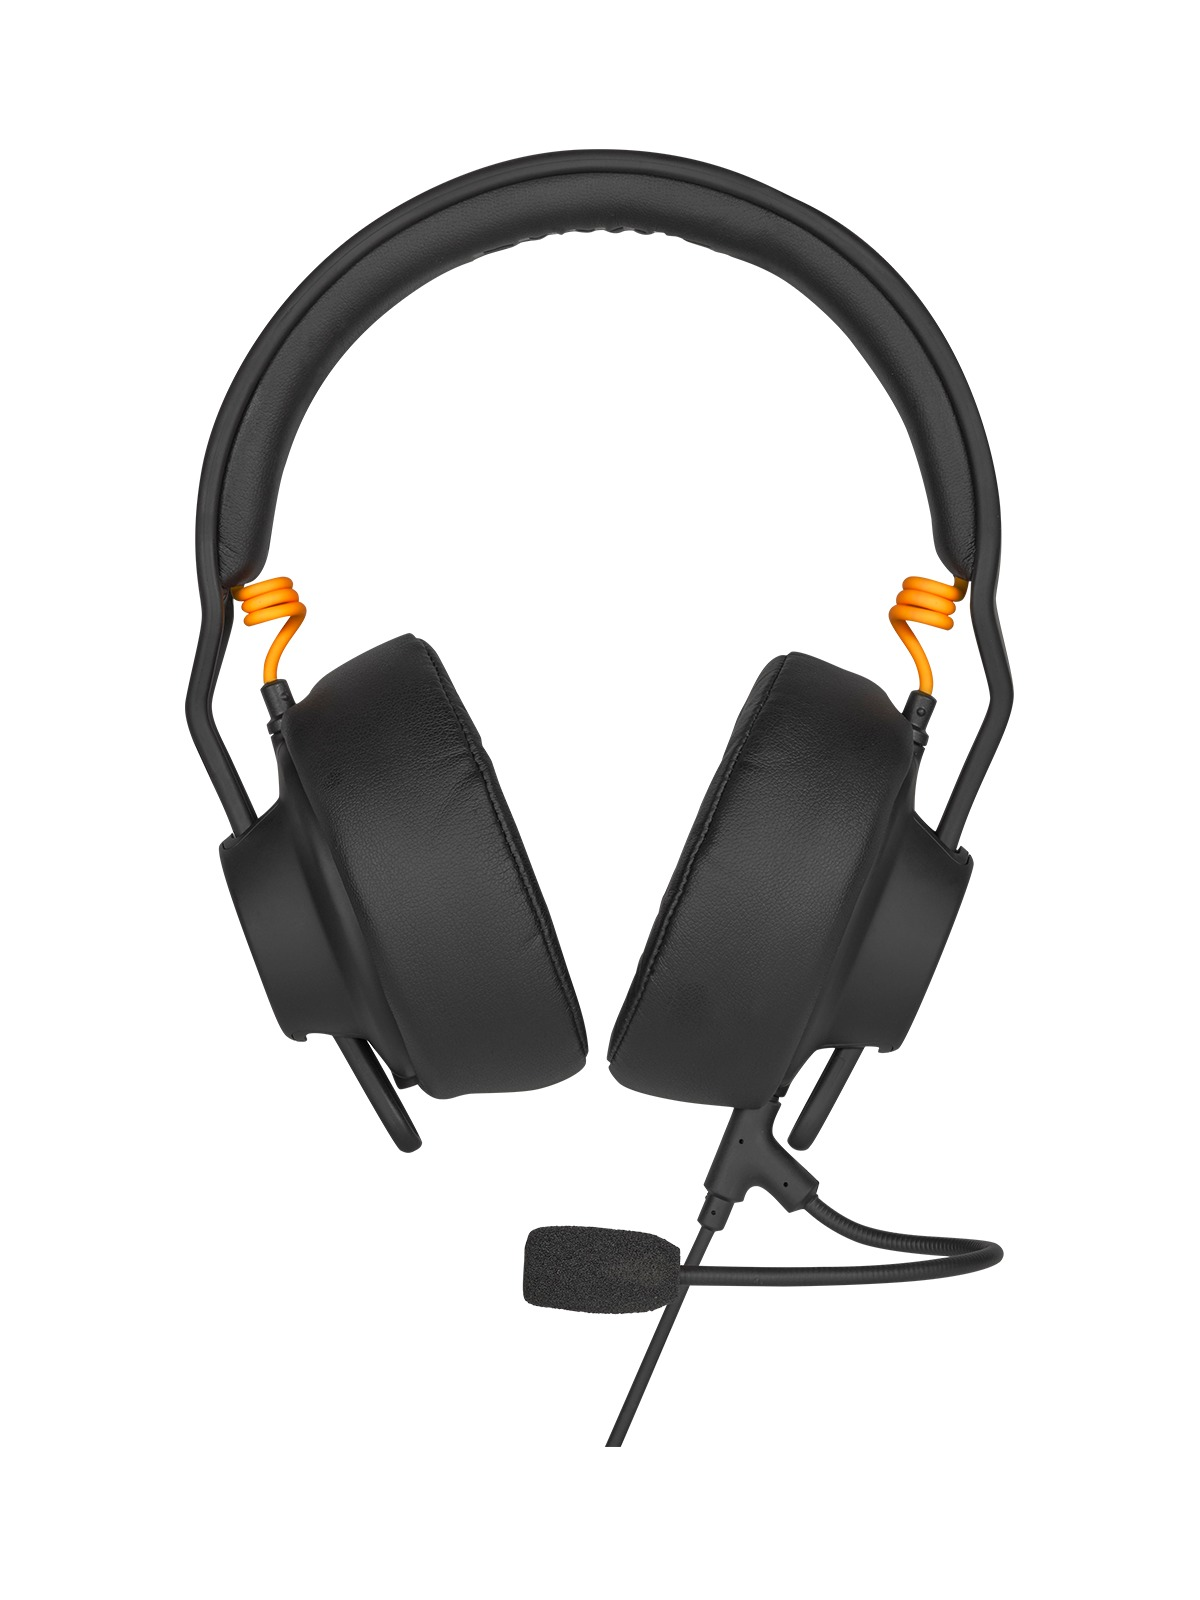 Fnatic Duel Modular Universal Gaming Headset for PC Games image